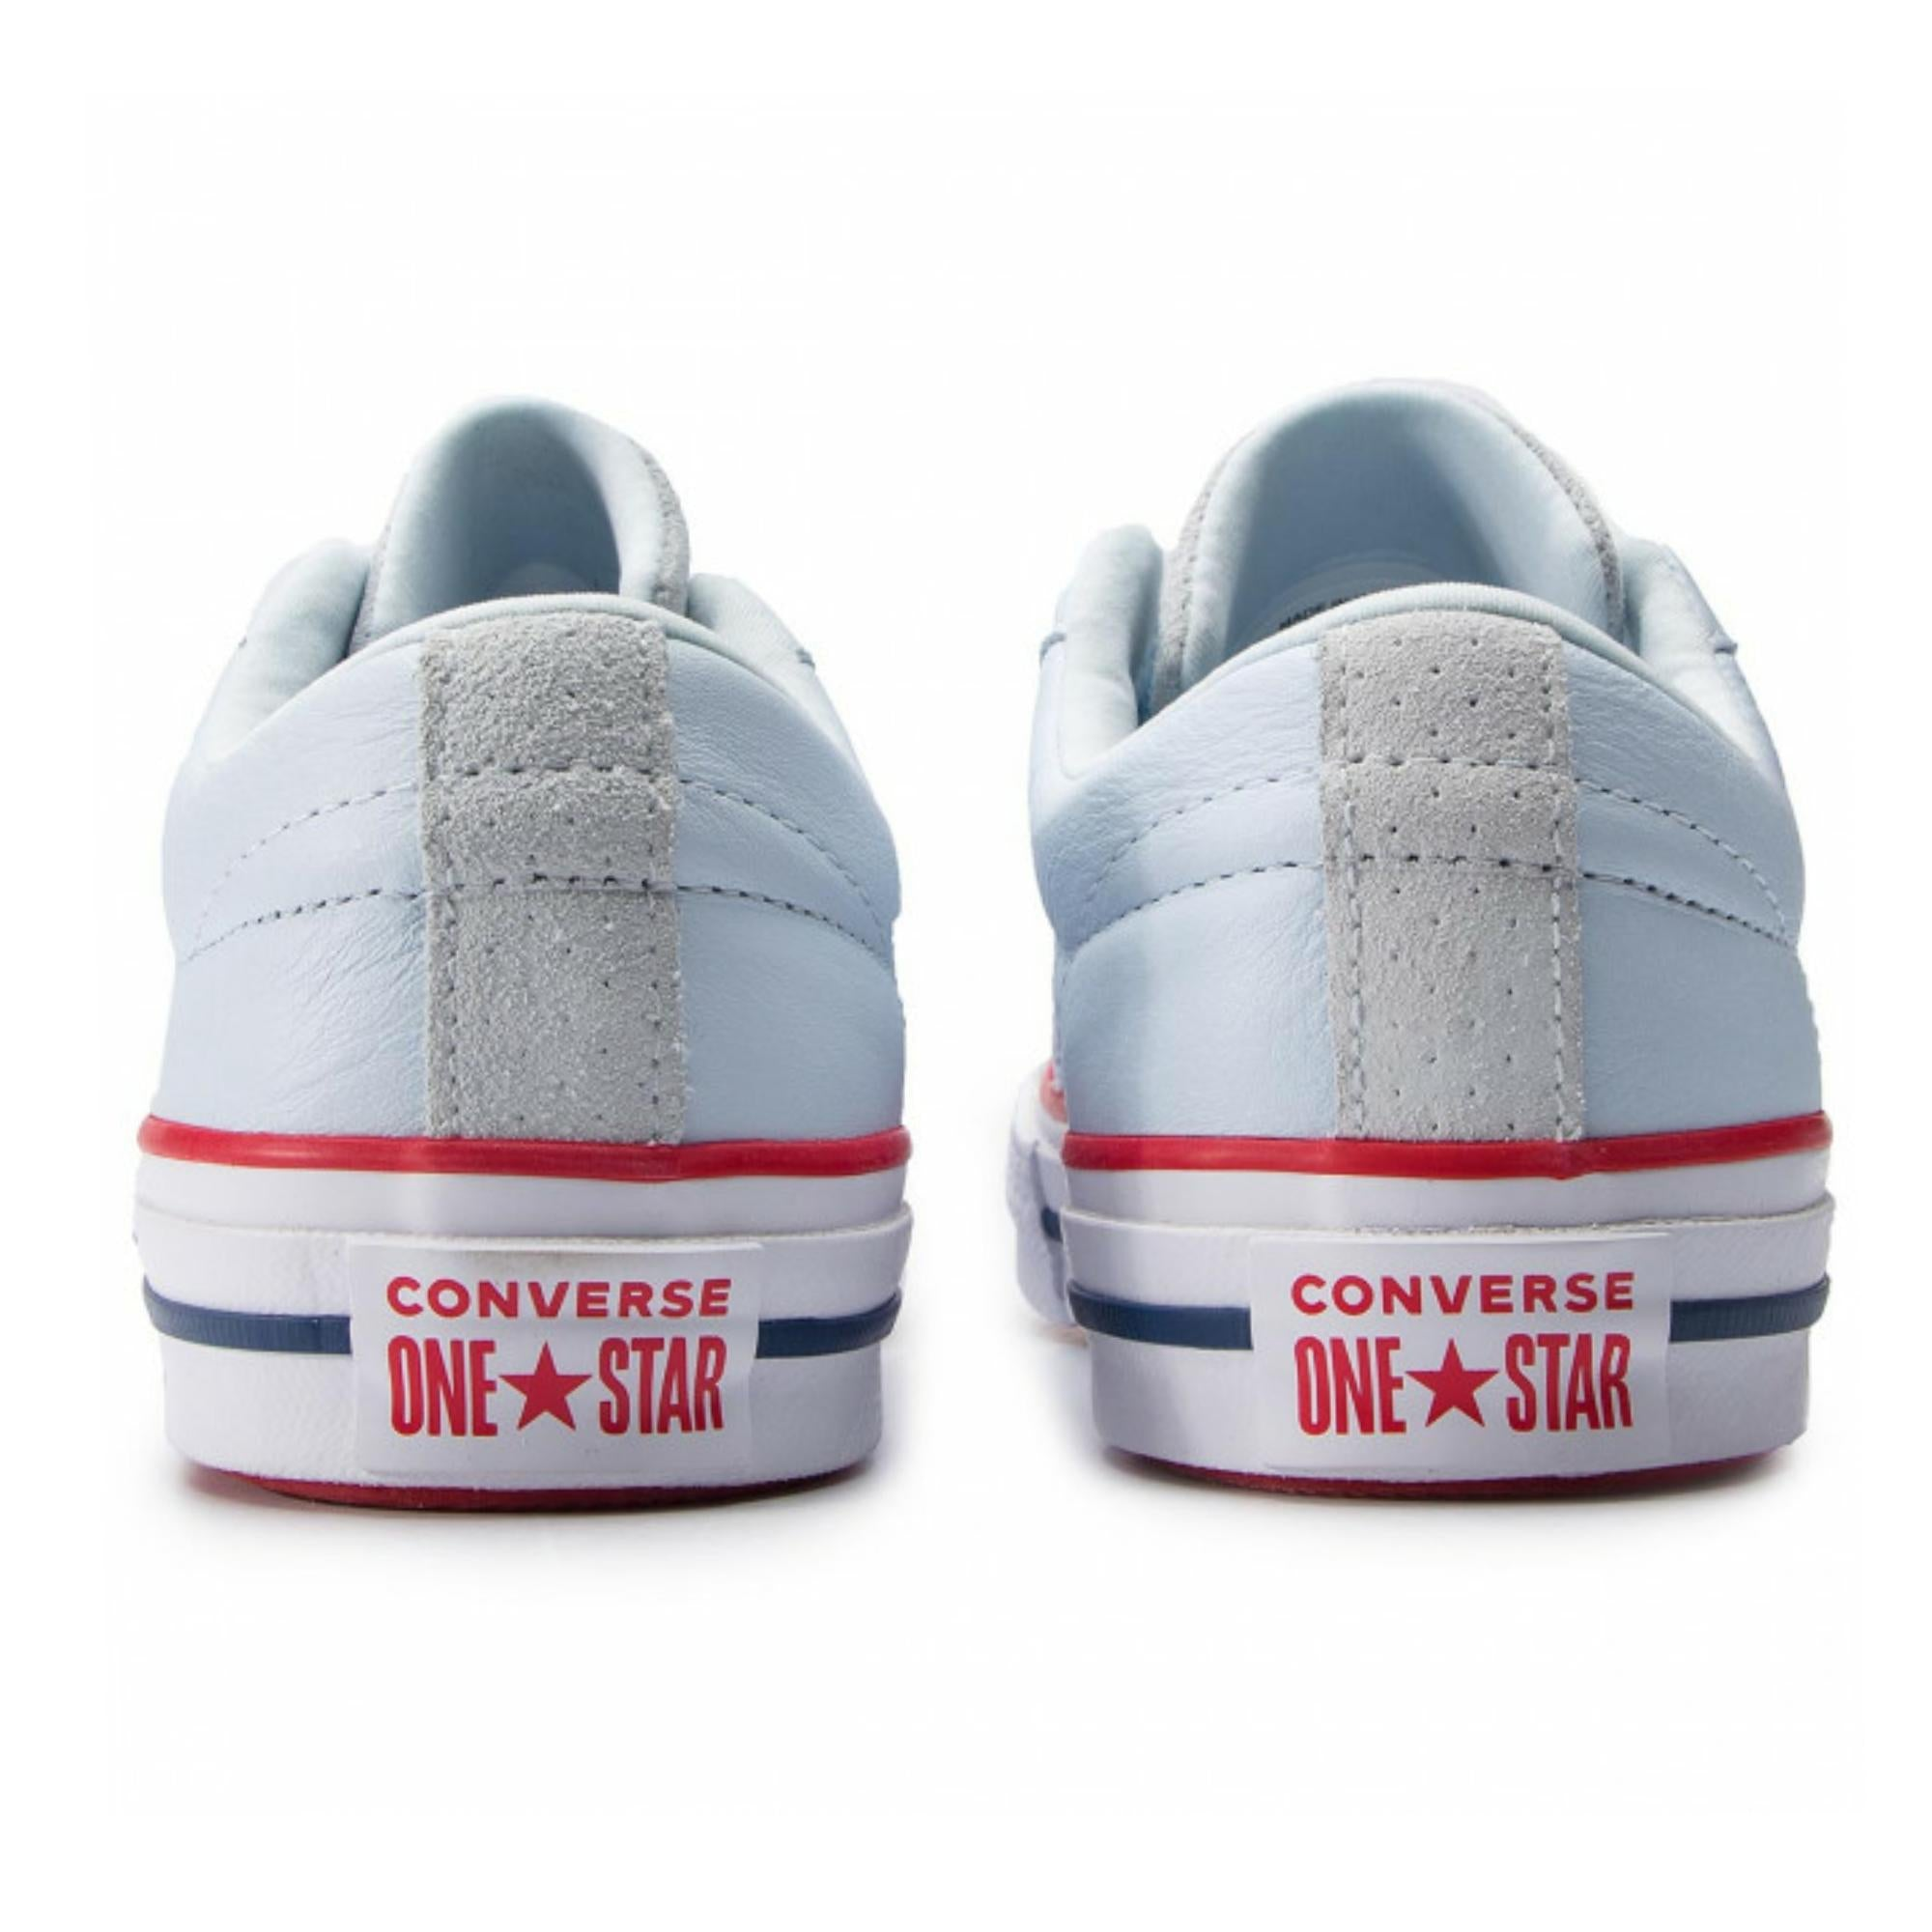 ONE STAR OX BLUE TINT/GYM RED/WHITE 160626C